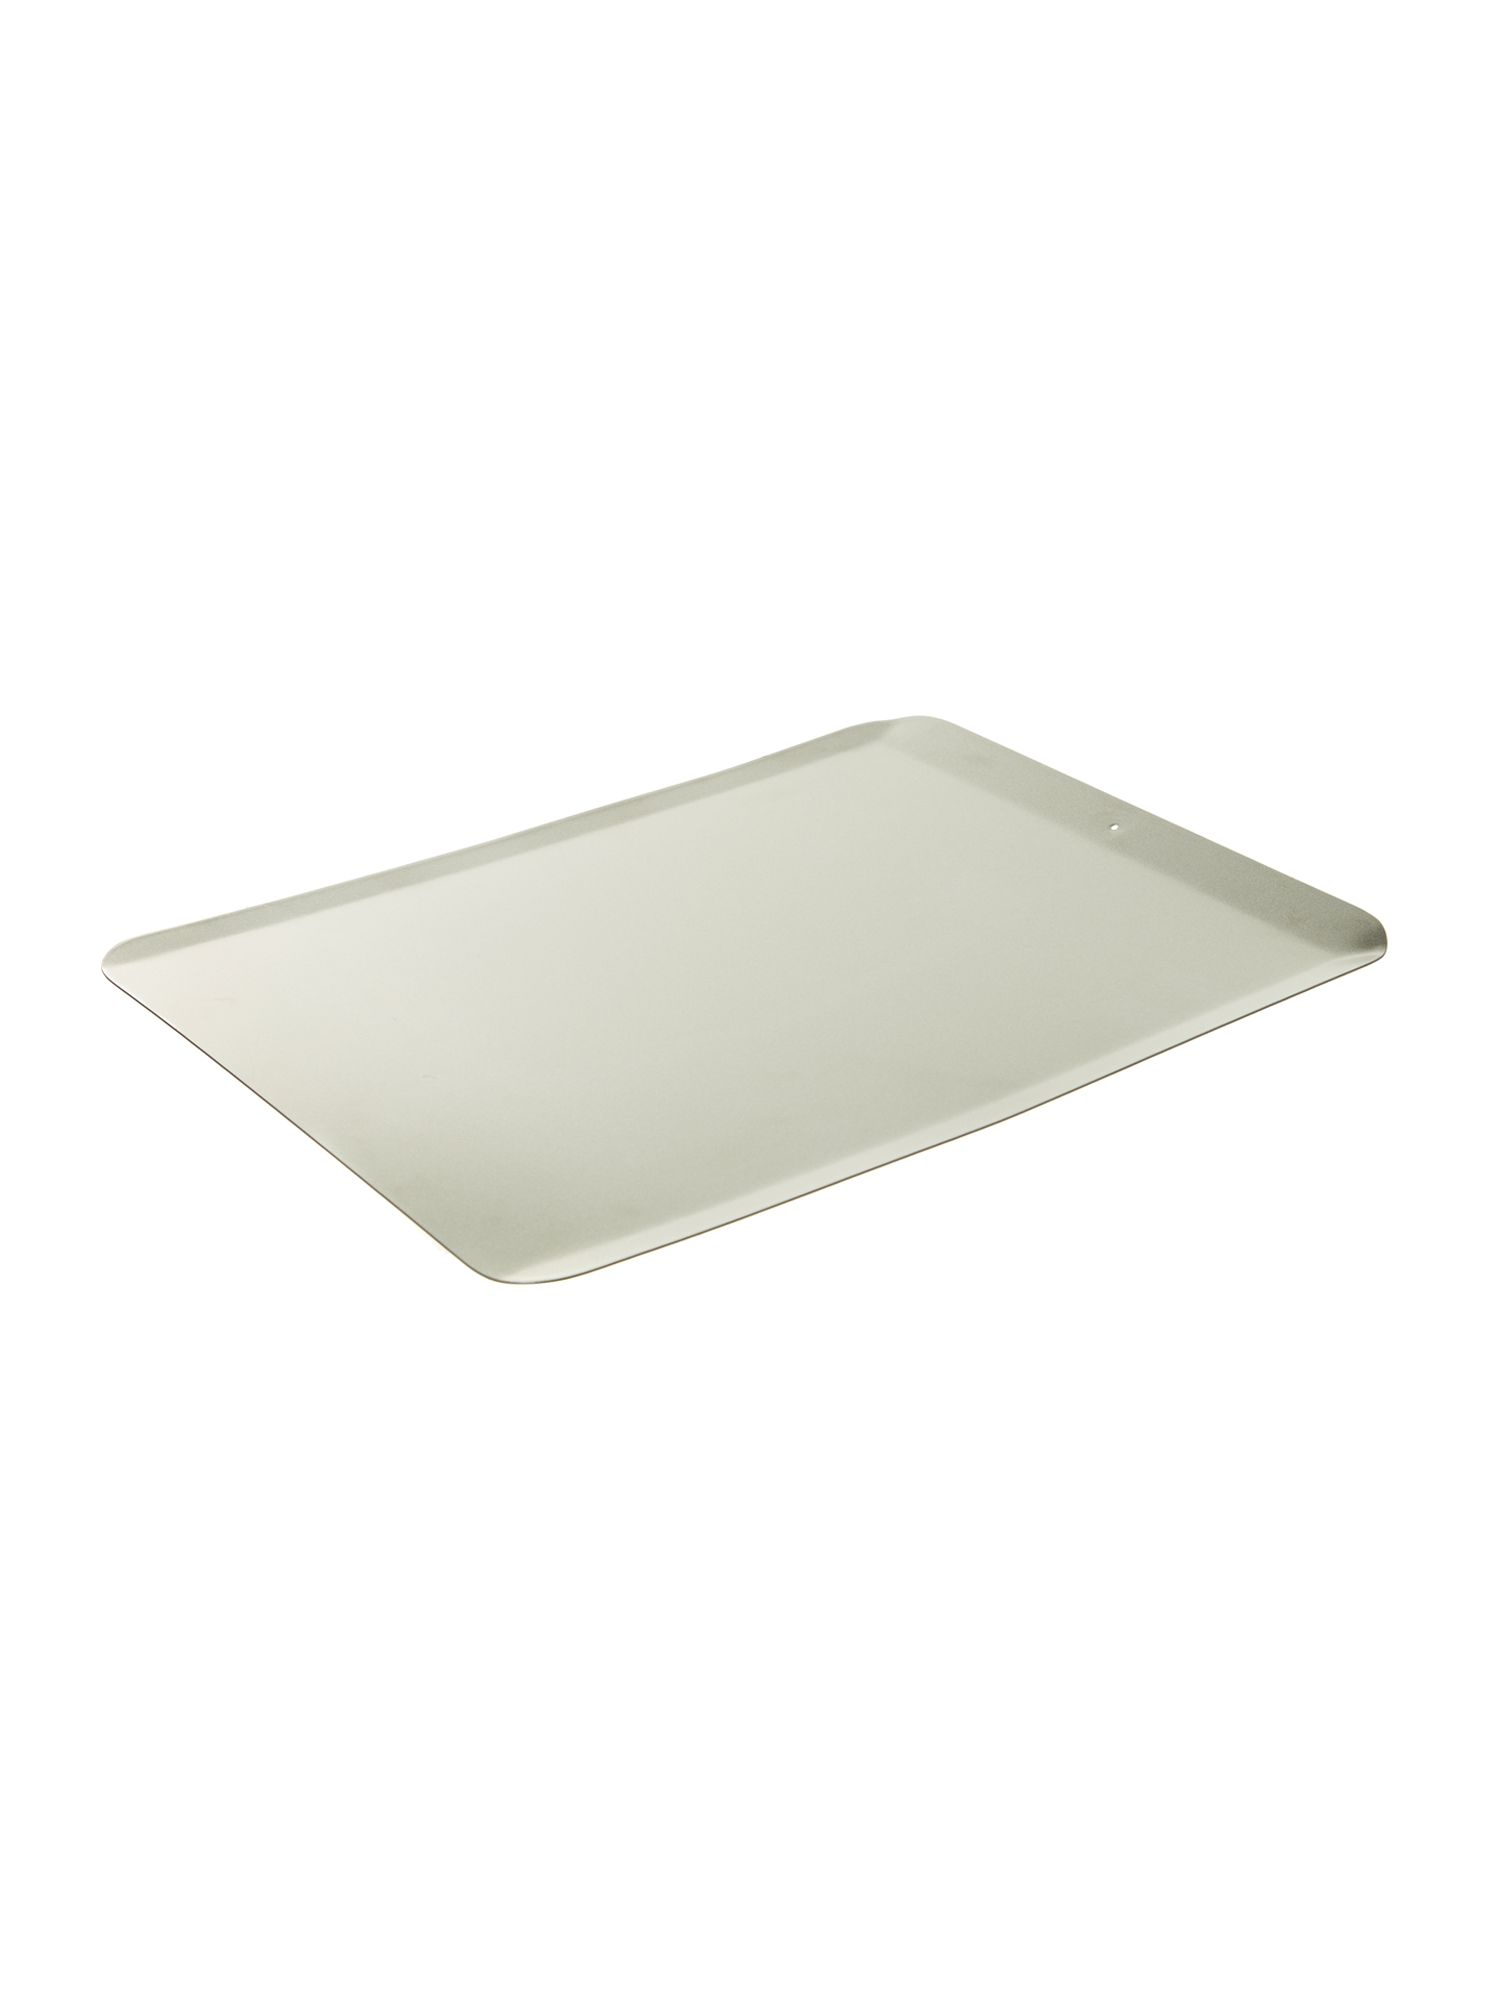 Linea Cookie baking tray, 35cm